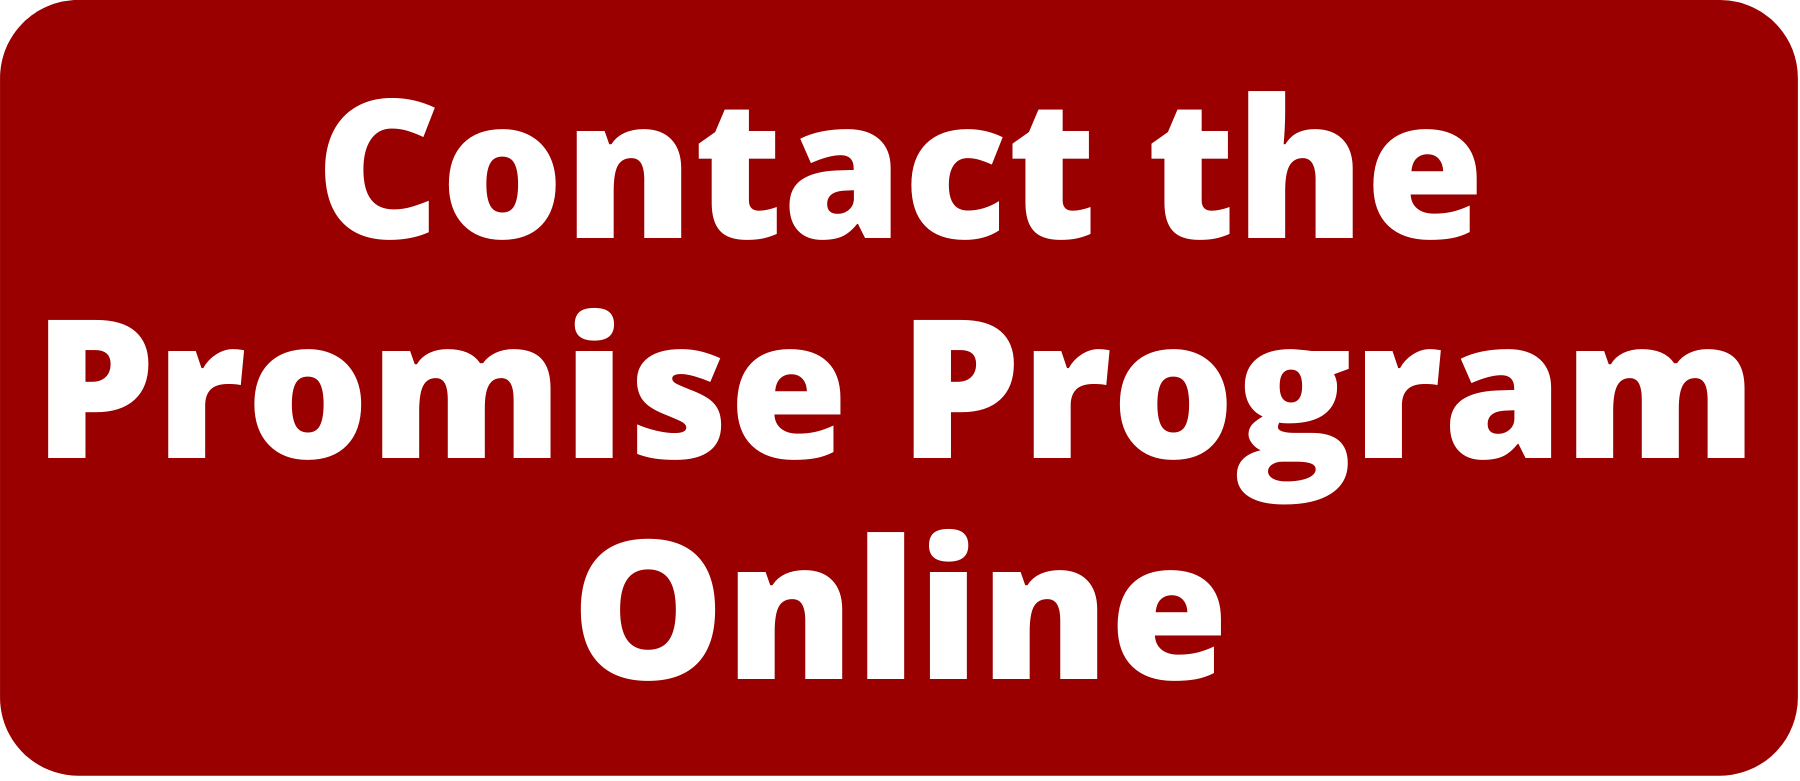 Contact the Promise Program online.